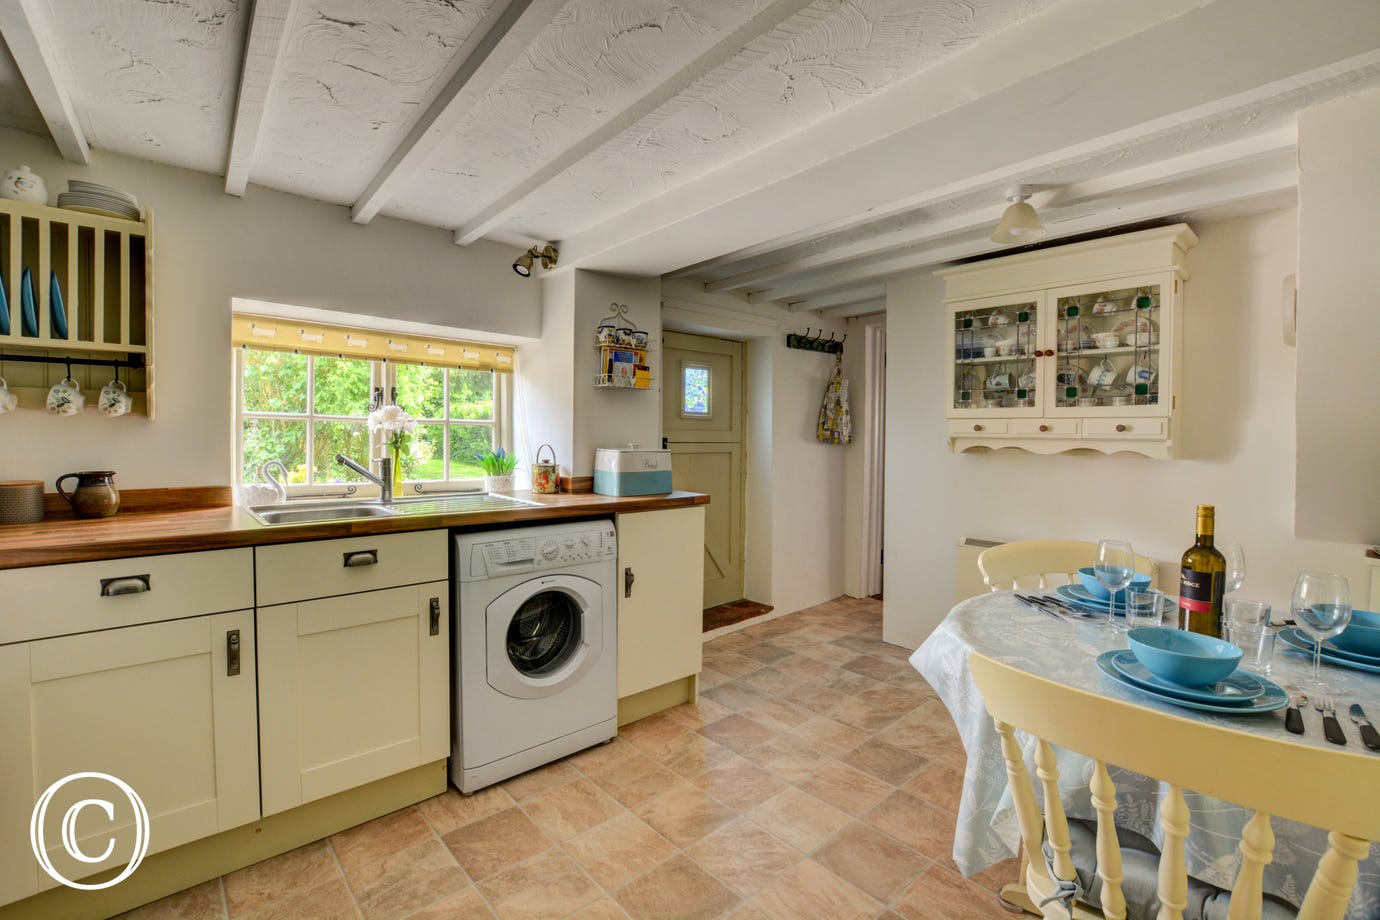 Kitchen with view of dining area and door